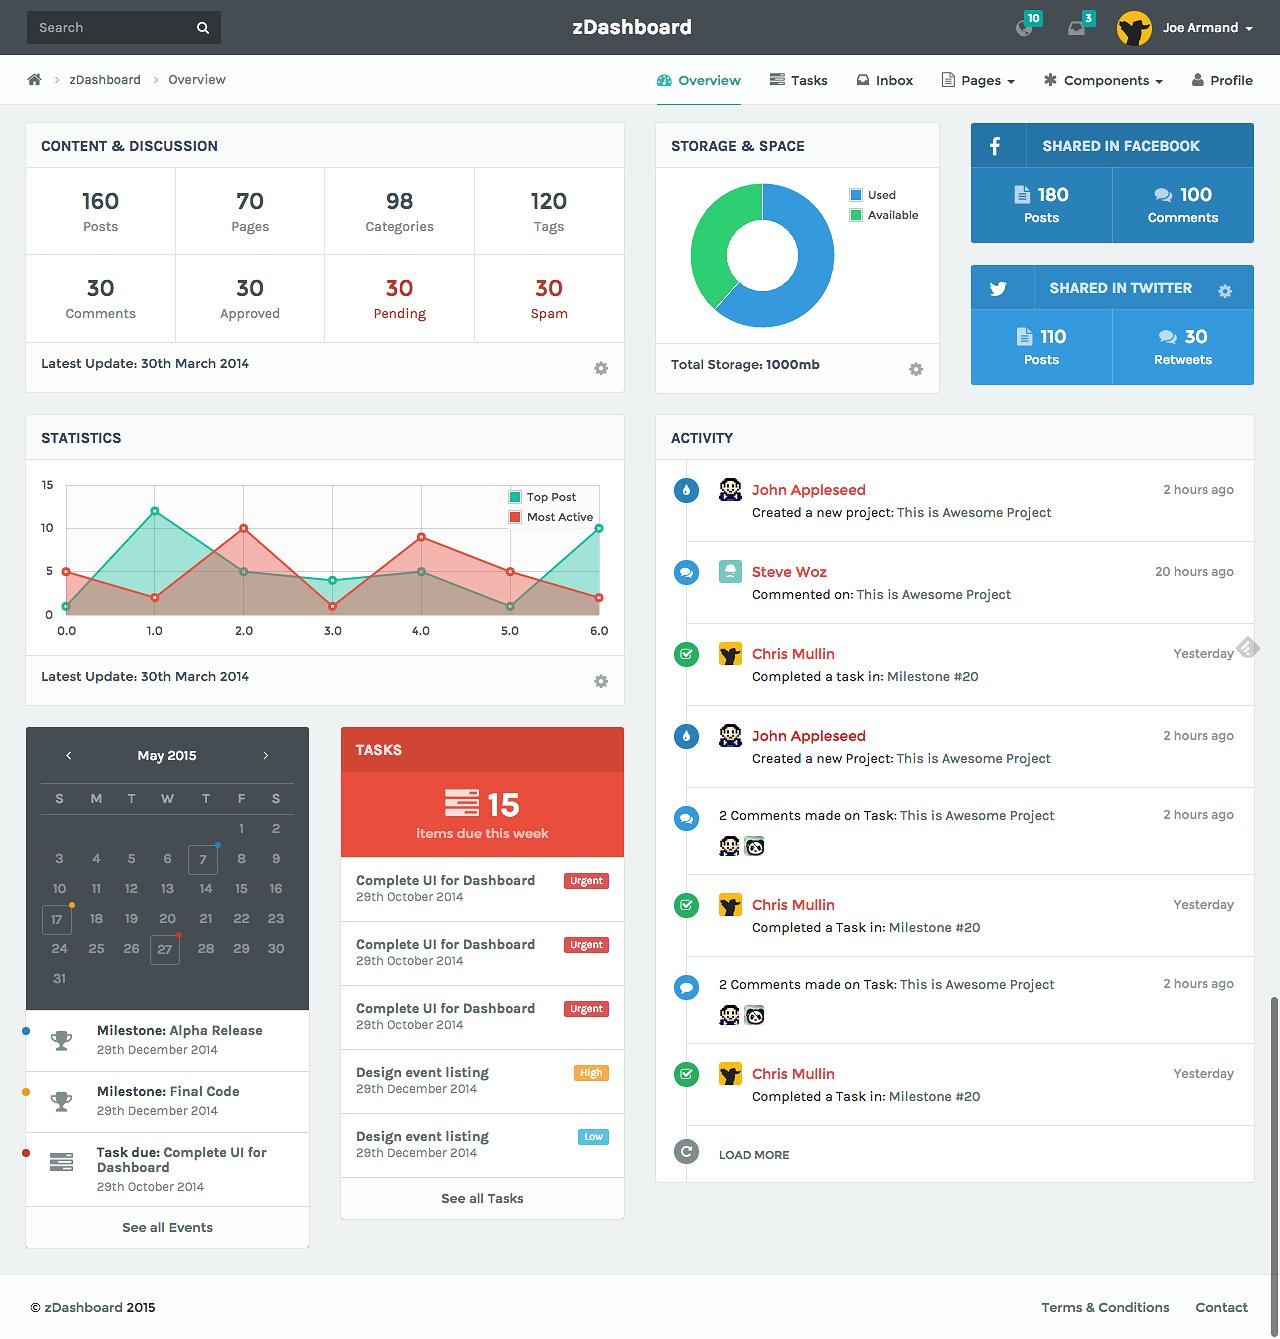 zDashboard: Simplest Dashboard